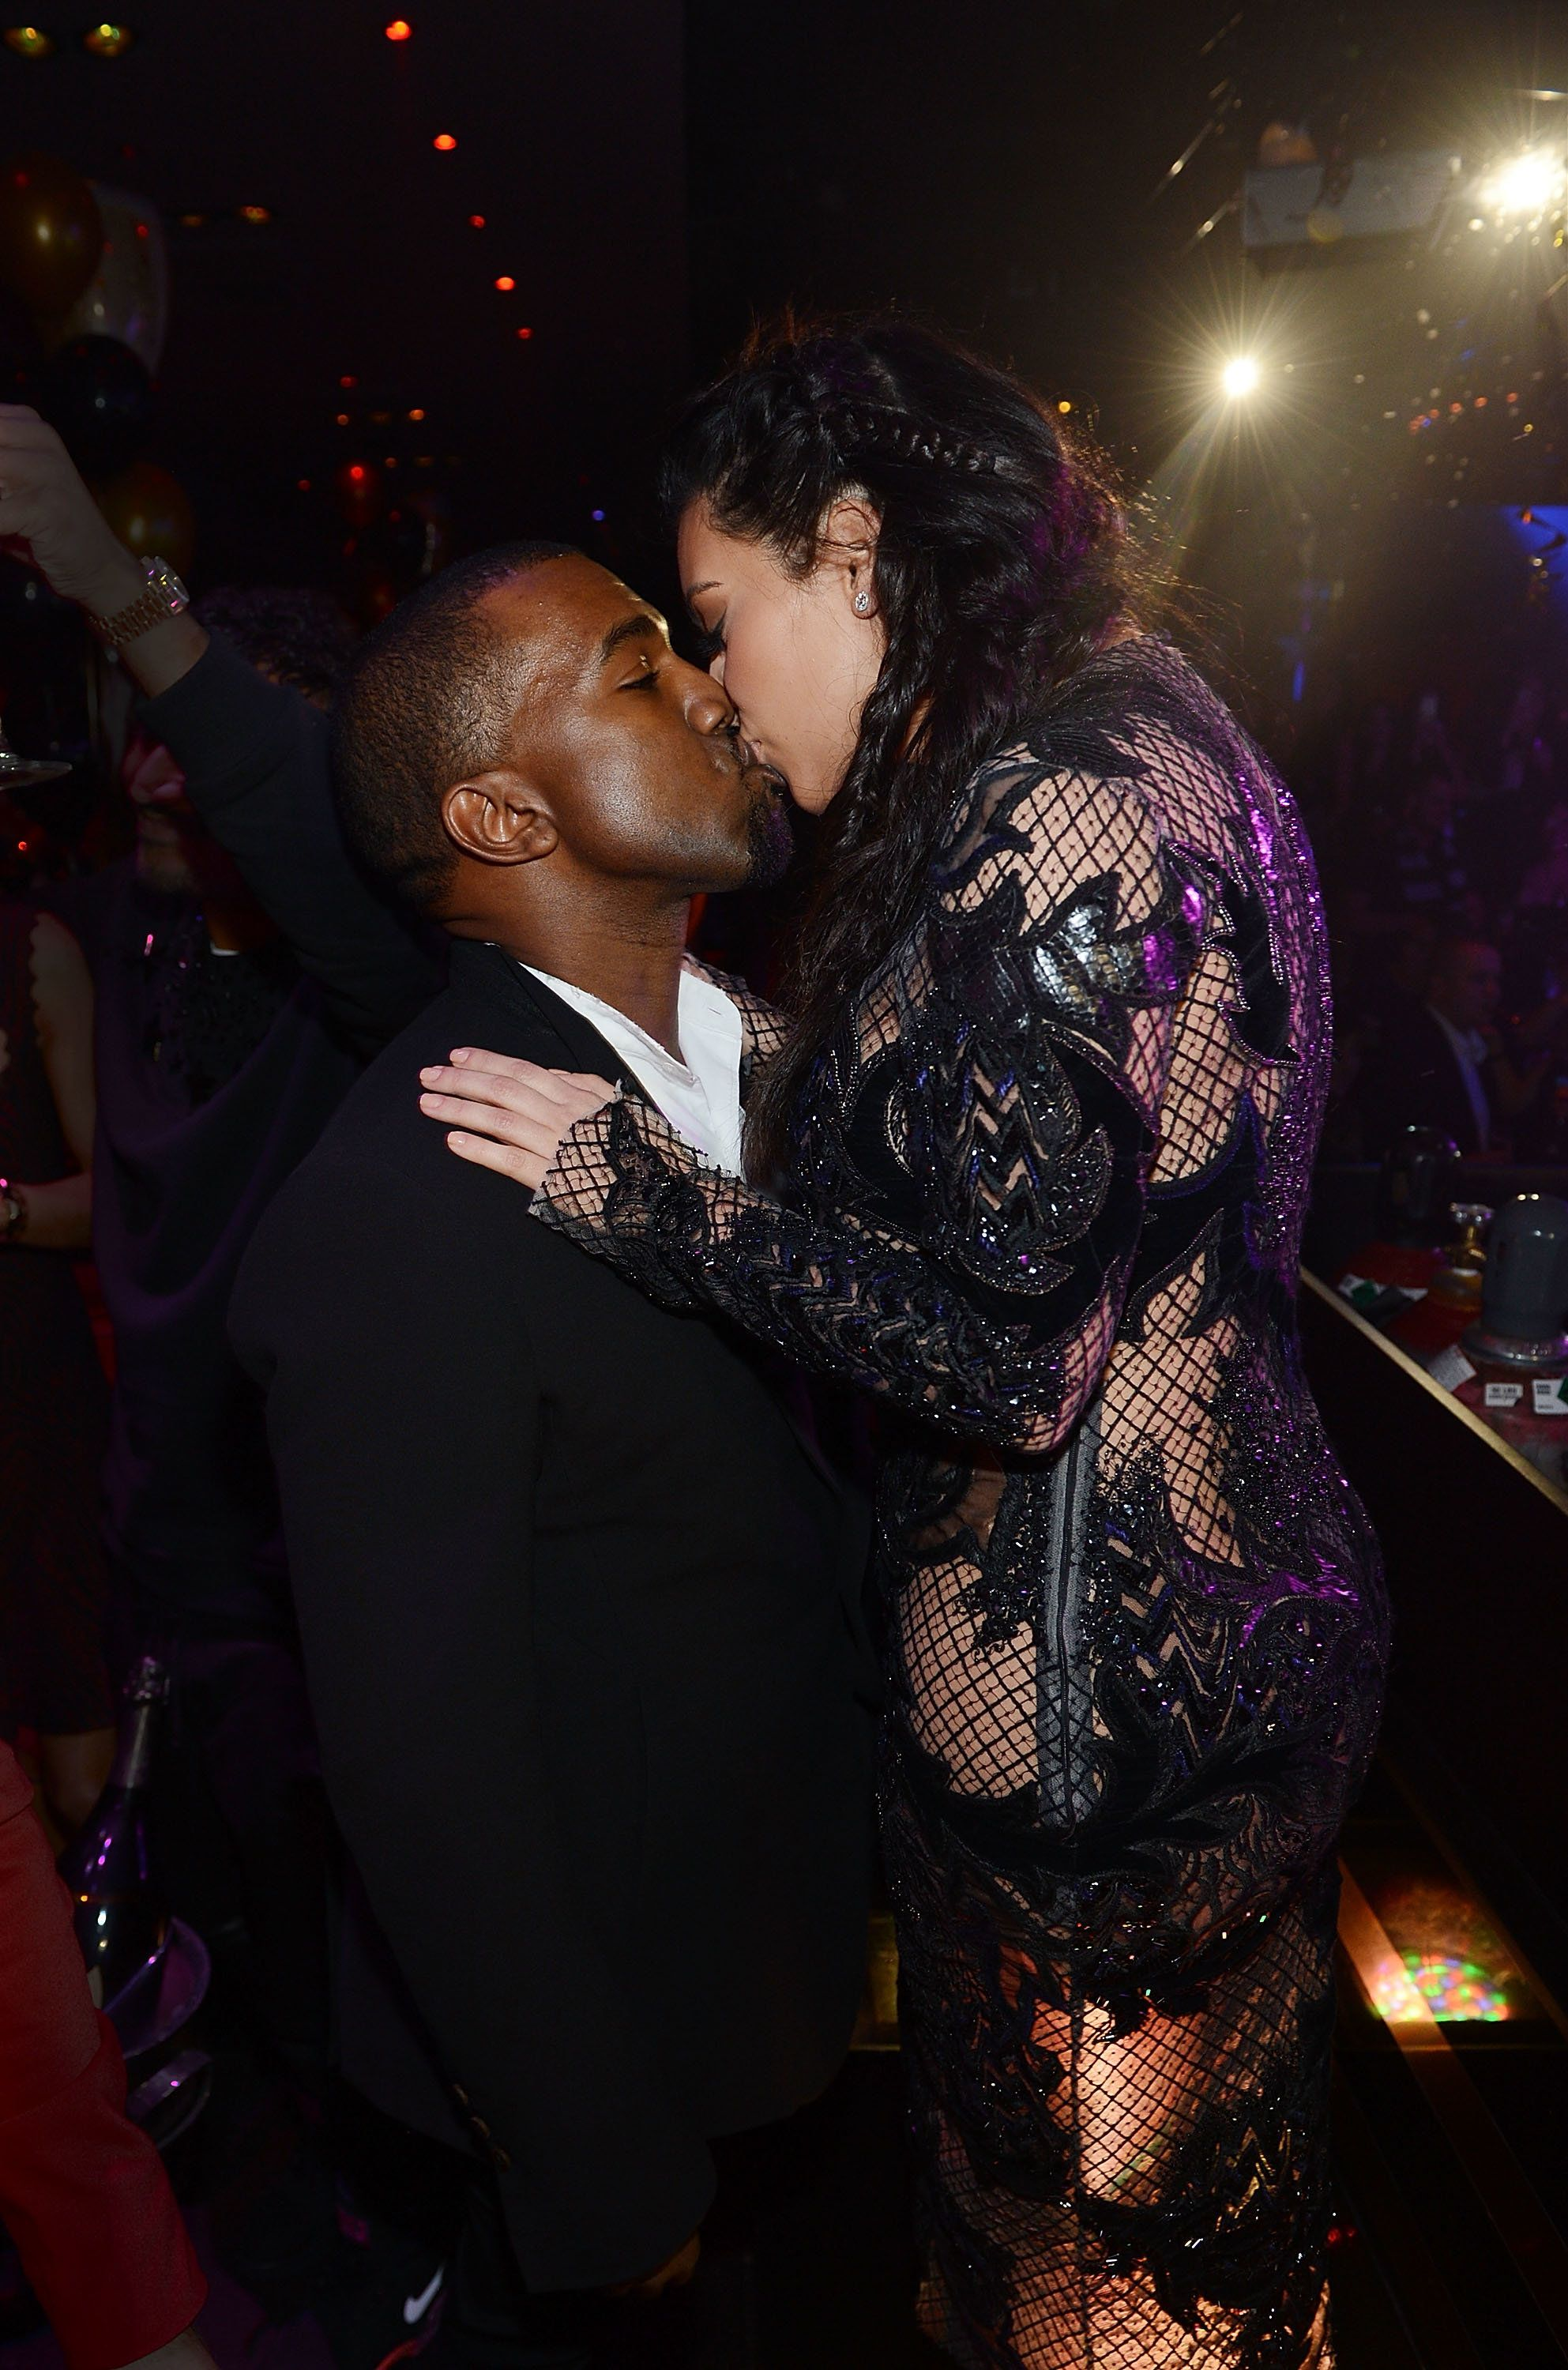 LAS VEGAS, NV - DECEMBER 31:  (Exclusive Coverage) Kanye West and Kim Kardashian celebrate New Year's Eve countdown at 1 OAK Nightclub at The Mirage Hotel & Casino on December 31, 2012 in Las Vegas, Nevada.  (Photo by Denise Truscello/WireImage)